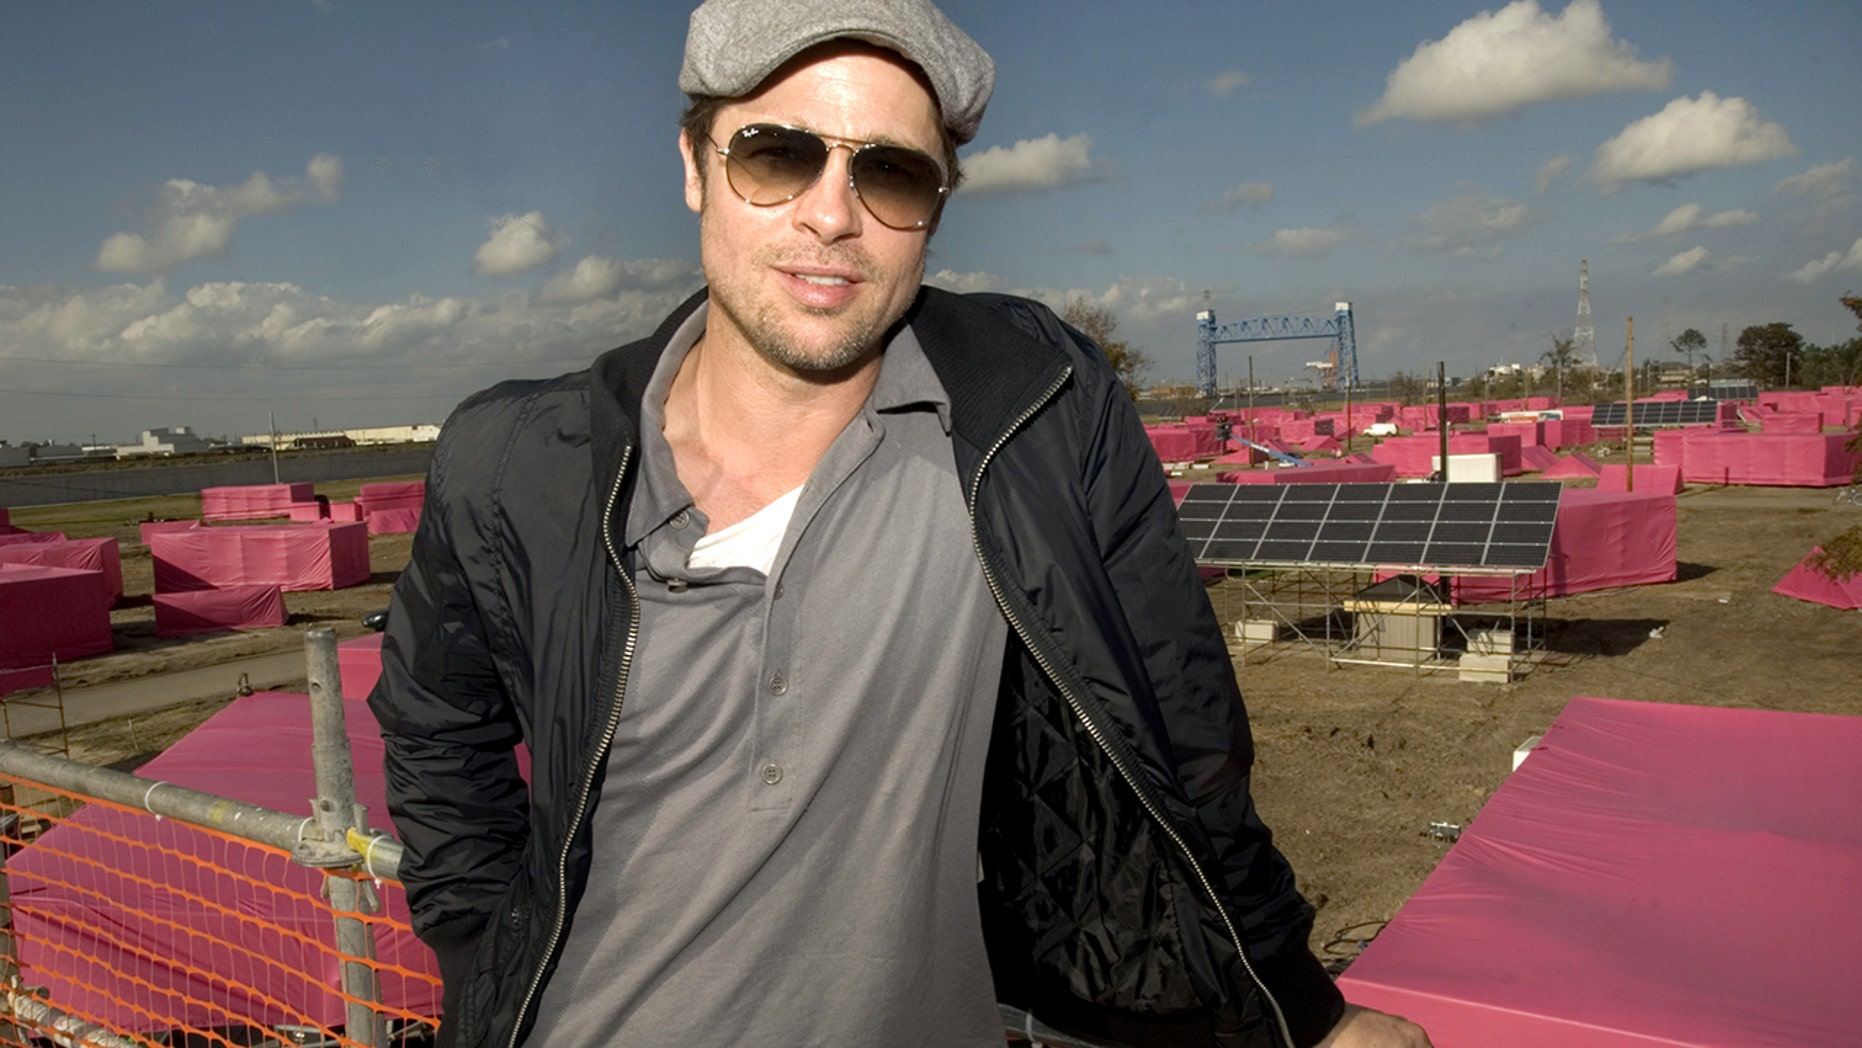 "Brad Pitt is pictured before pink stand-in structures (background) where 150 ecologically sustainable homes are to be built 03 December 2007 in the Lower 9th Ward of New Orleans, Louisiana. Pitt is spending $12 million with his ""Make It Right Project"" to build the homes where levees broke and floodwater pushed houses from their foundations during Hurricane Katrina in August 2005."